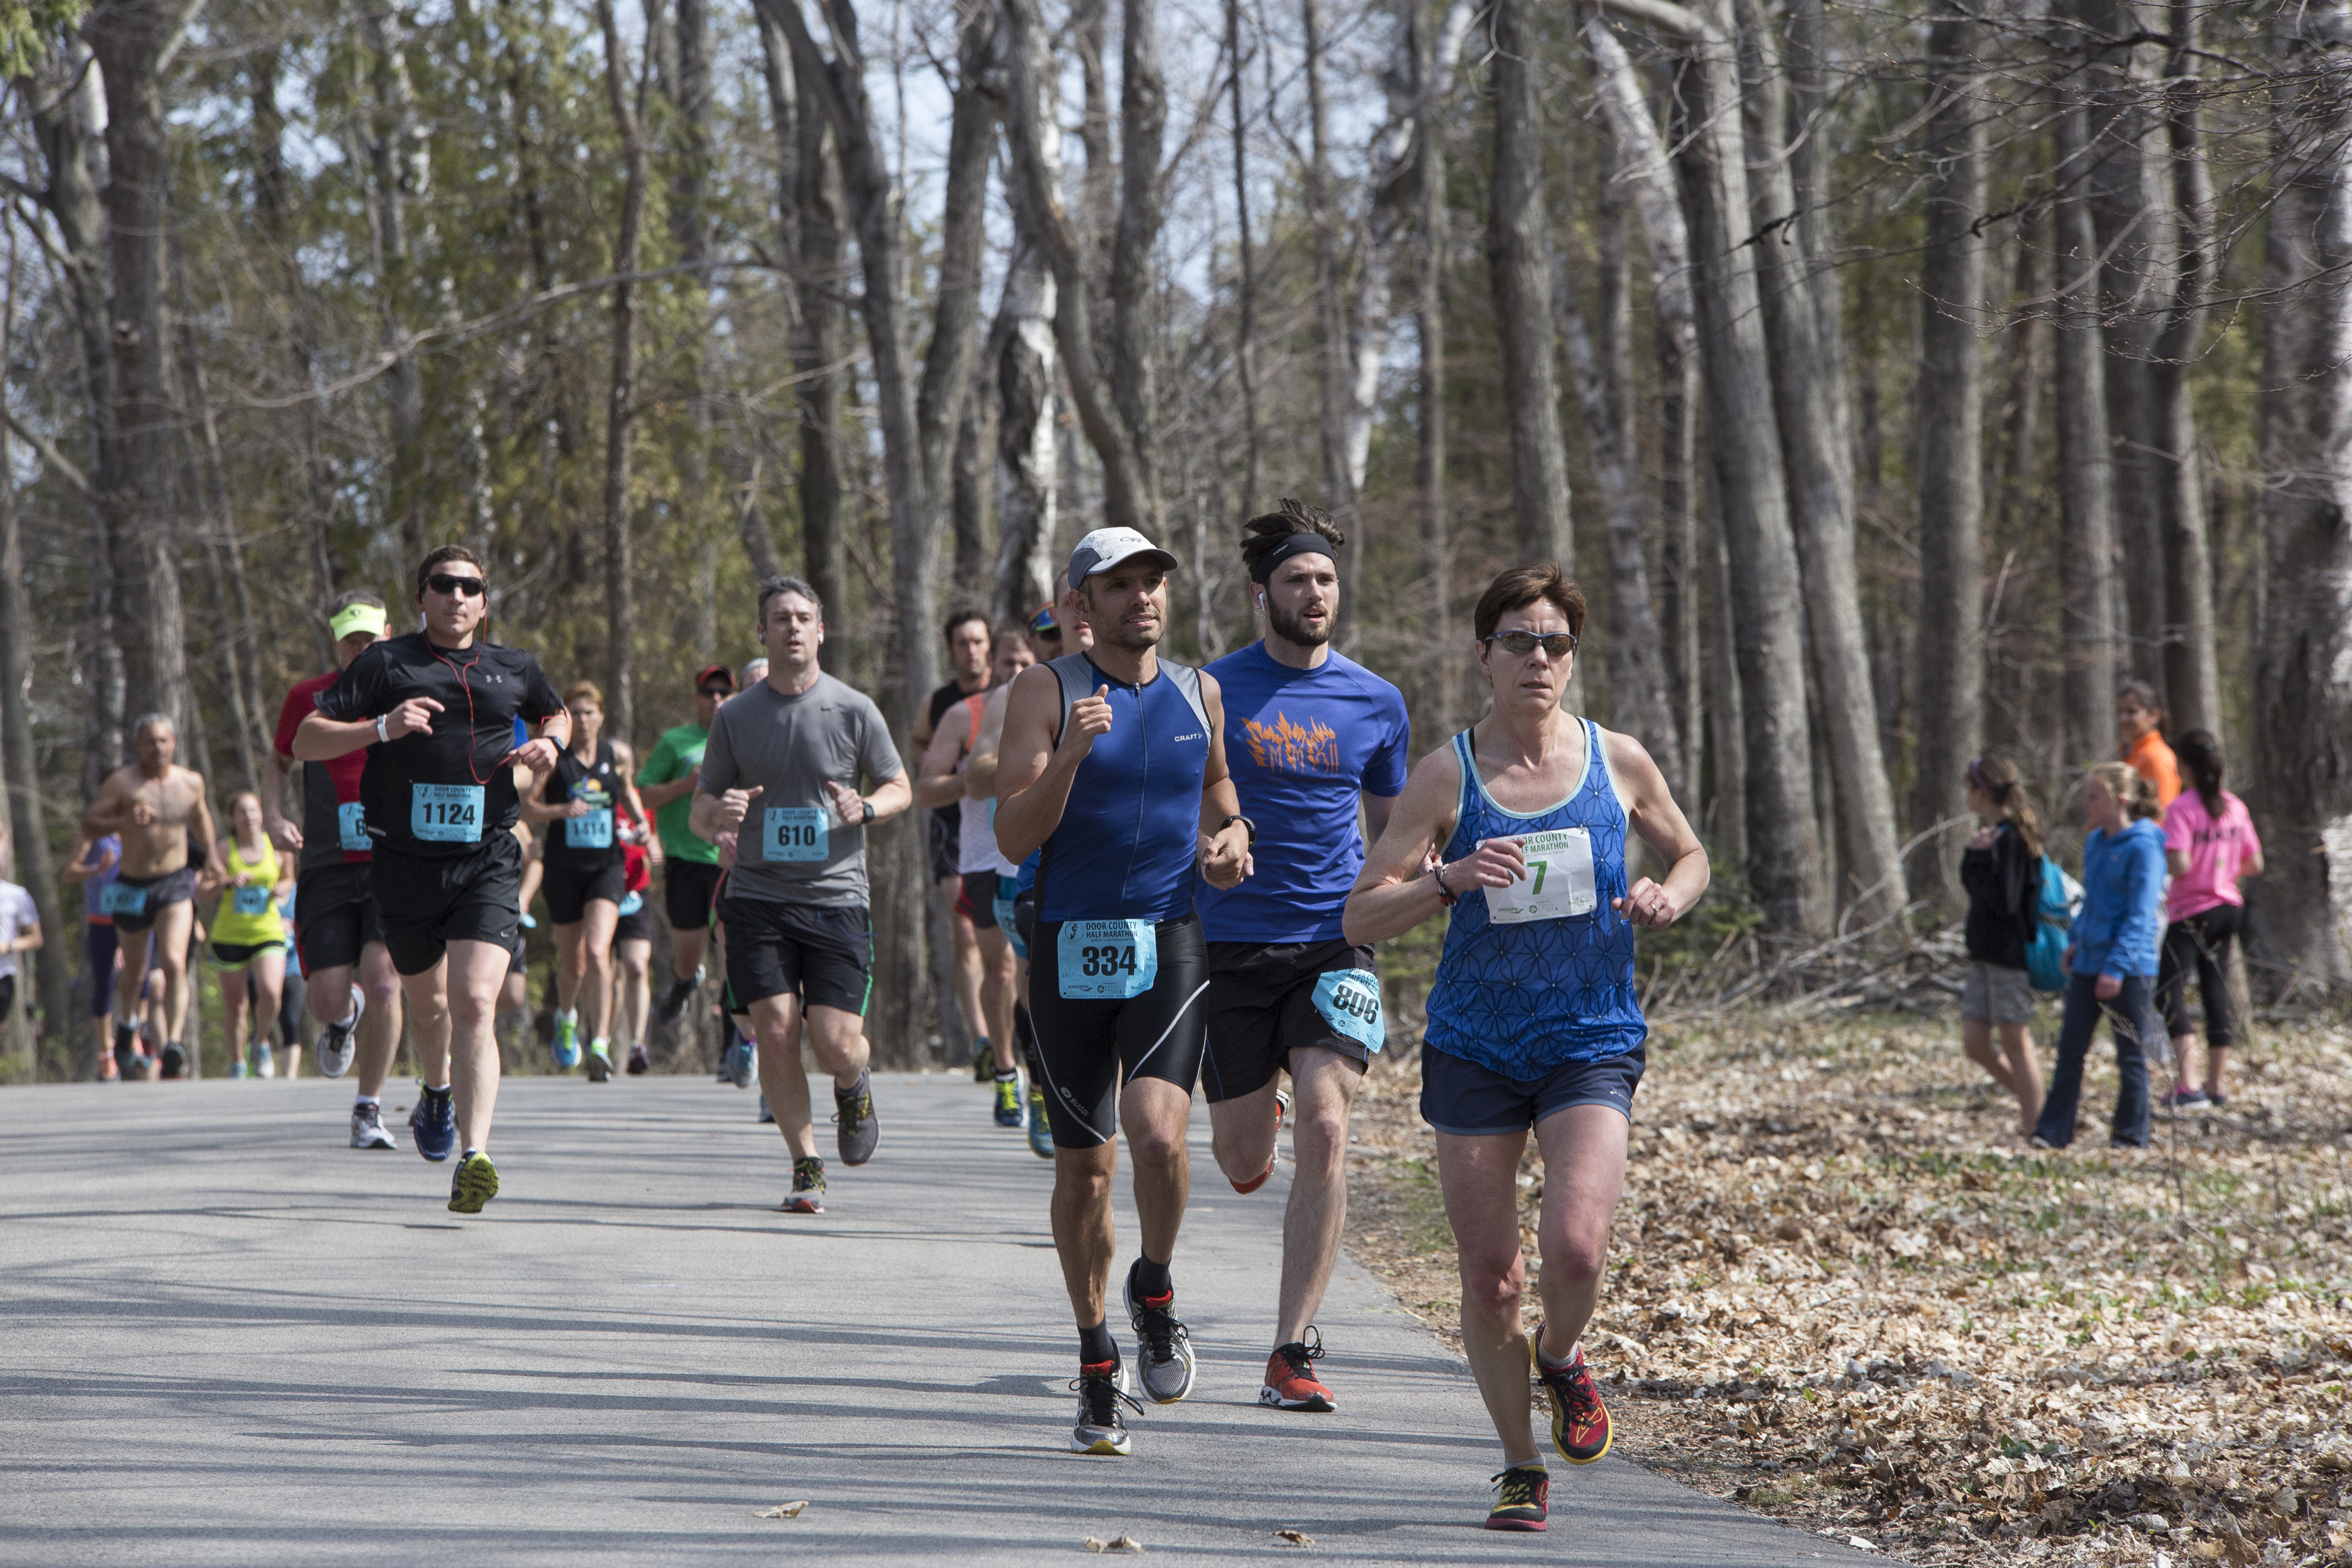 April 28: Southern Door Eagles Trail Trot, 2 Mile, Brussels